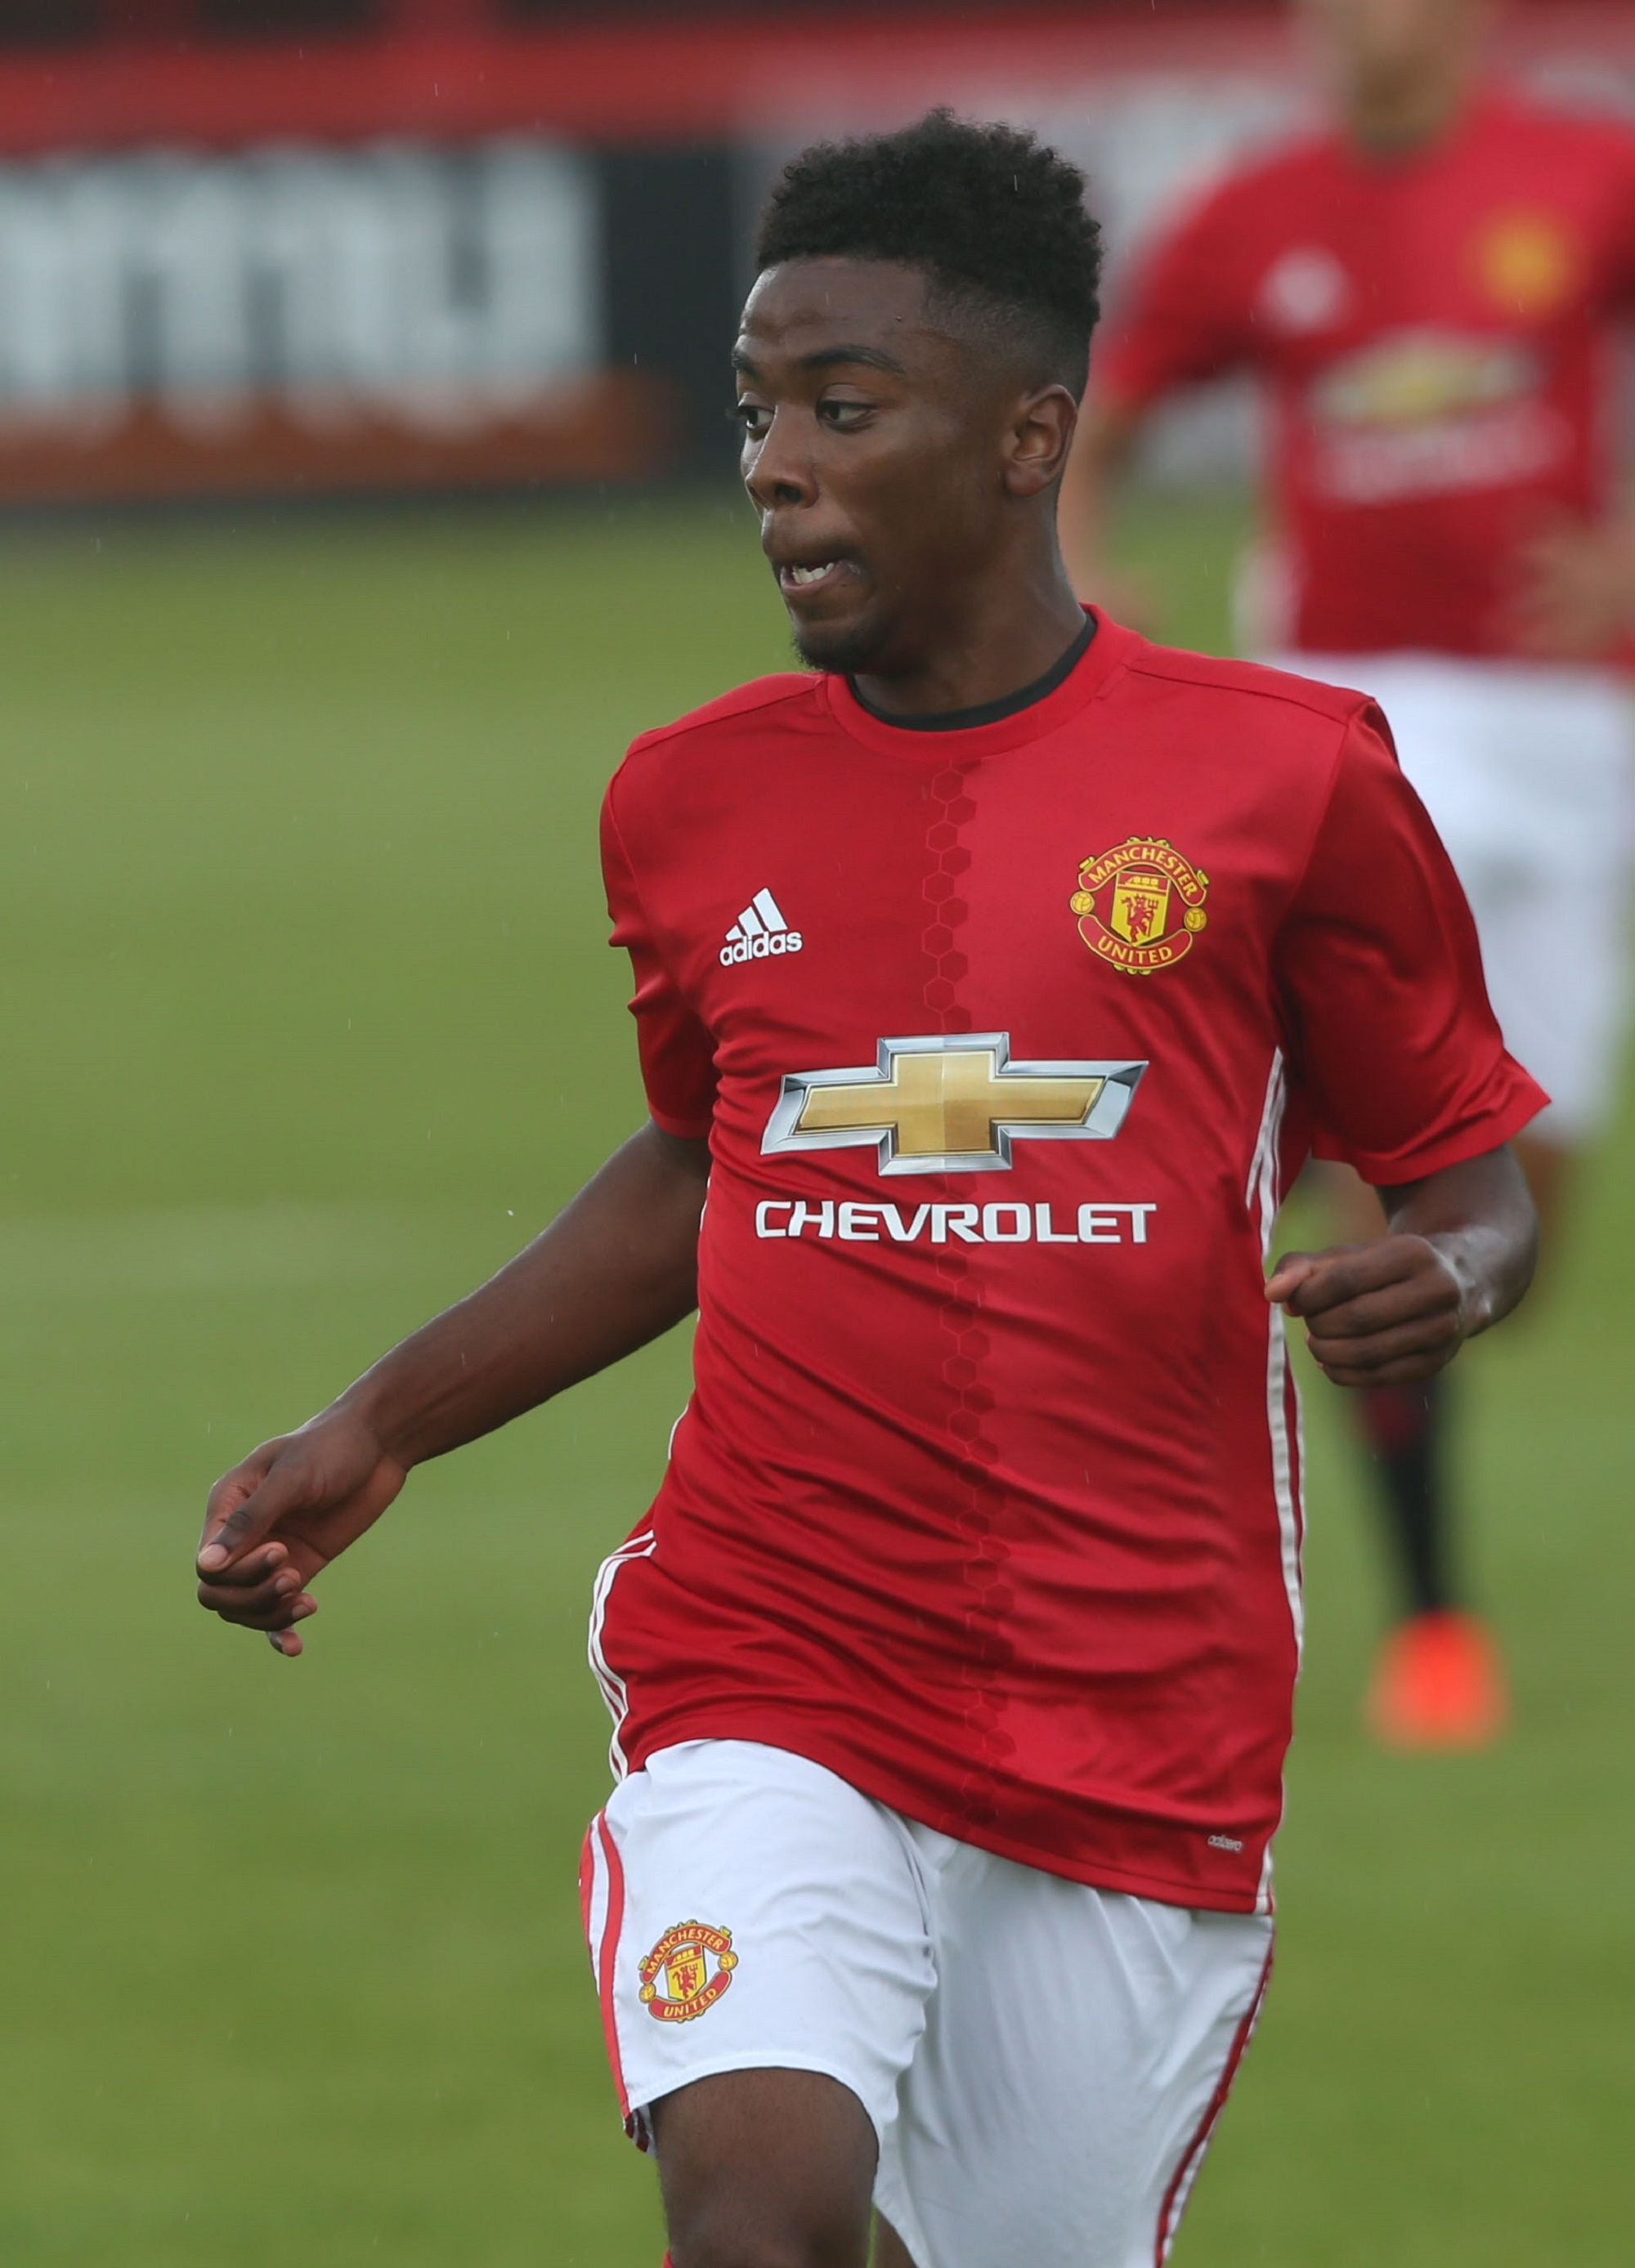 Angel Gomes Manchester United Players Manchester United Football Club Young Football Players